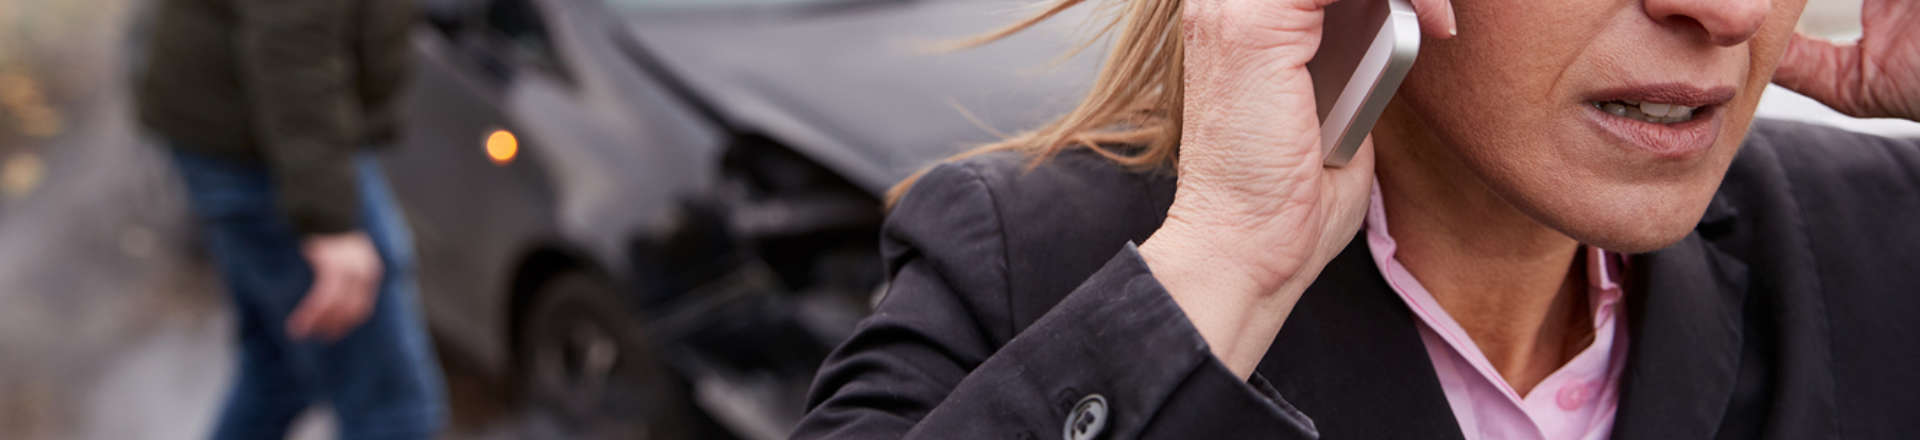 woman calling an attorney after a car accident